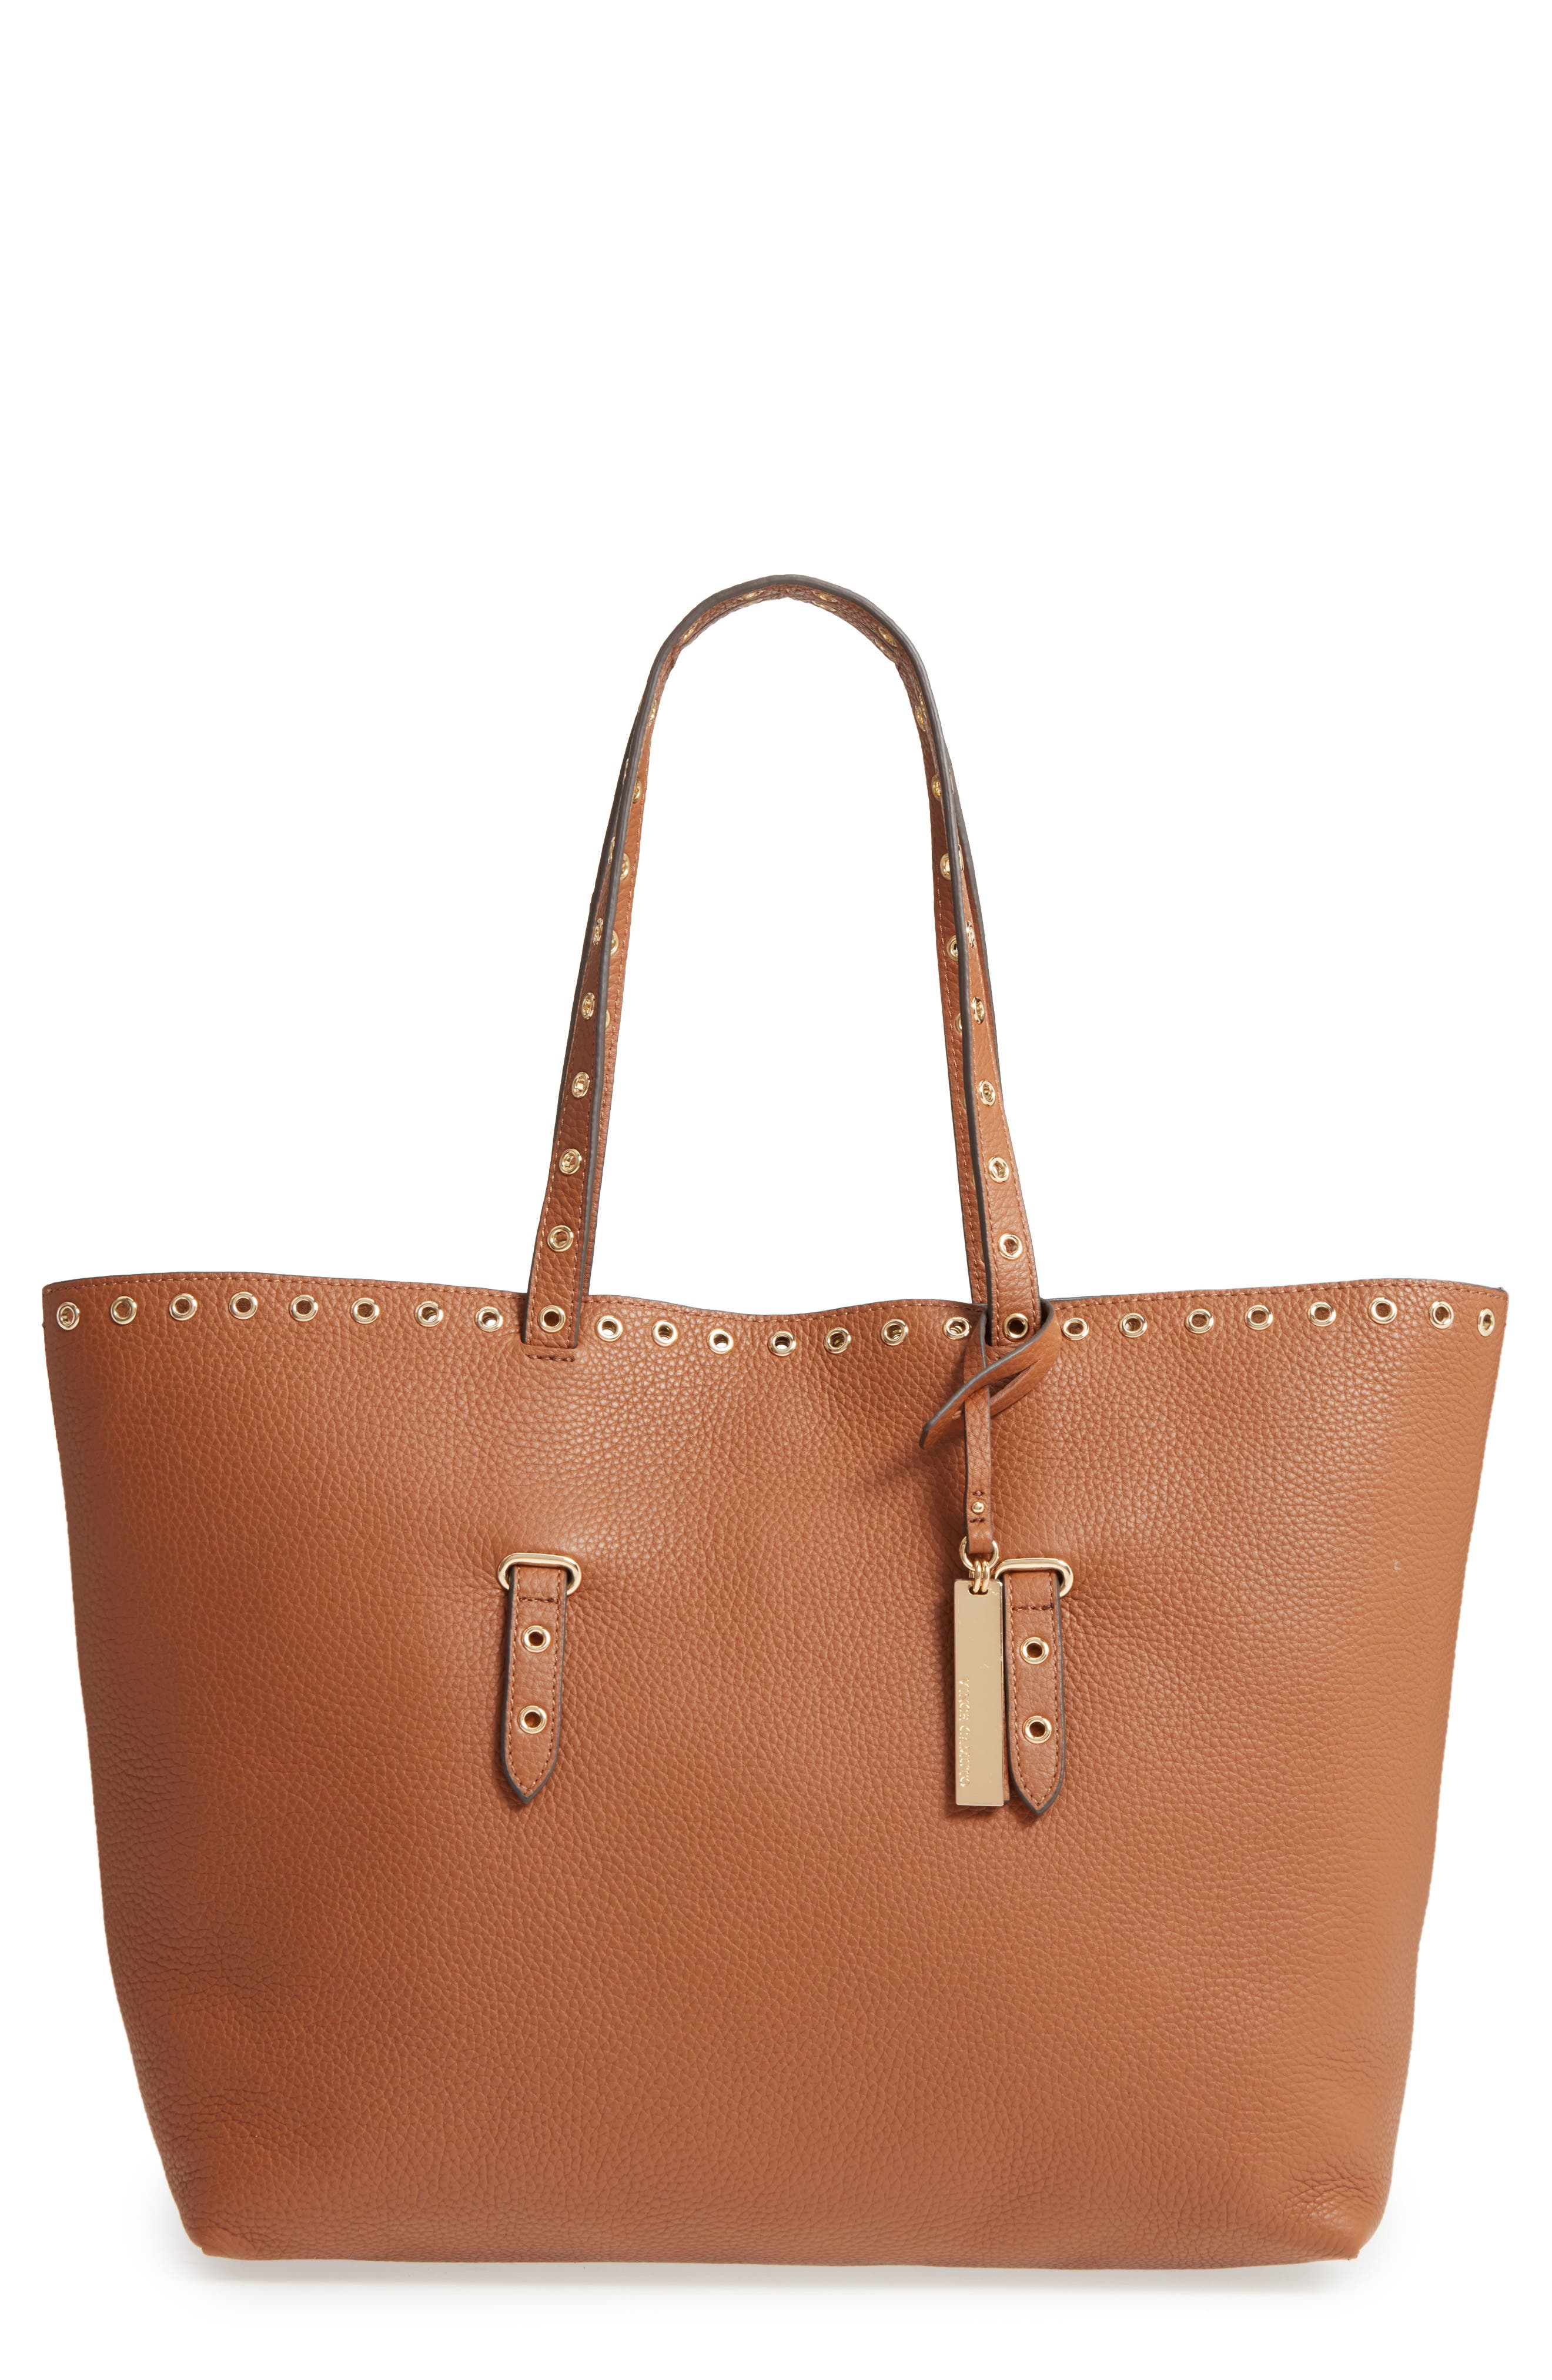 Alternate Image 1 Selected - Vince Camuto Areli Leather Tote